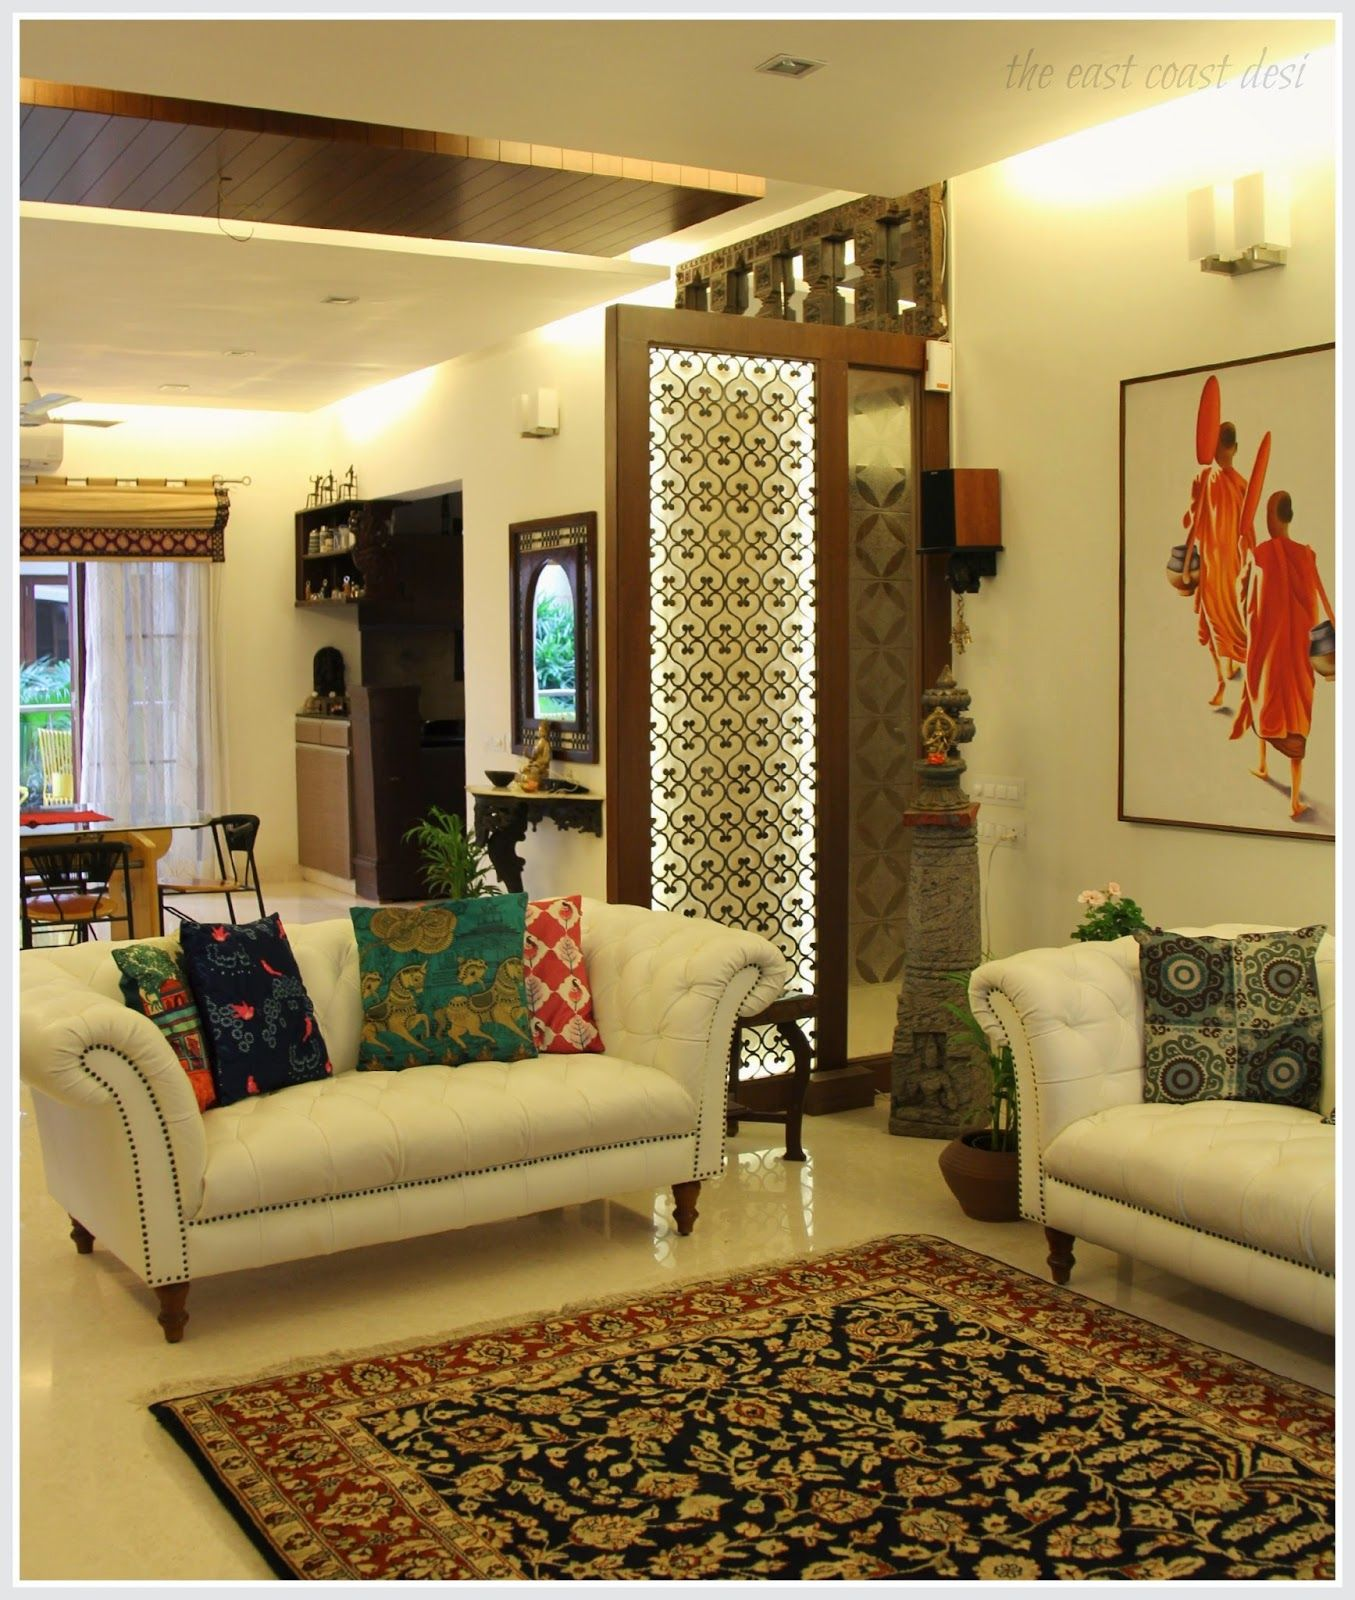 Indian Living Room Ideas The East Coast Desi Masterful Mixing Home Tour Decor